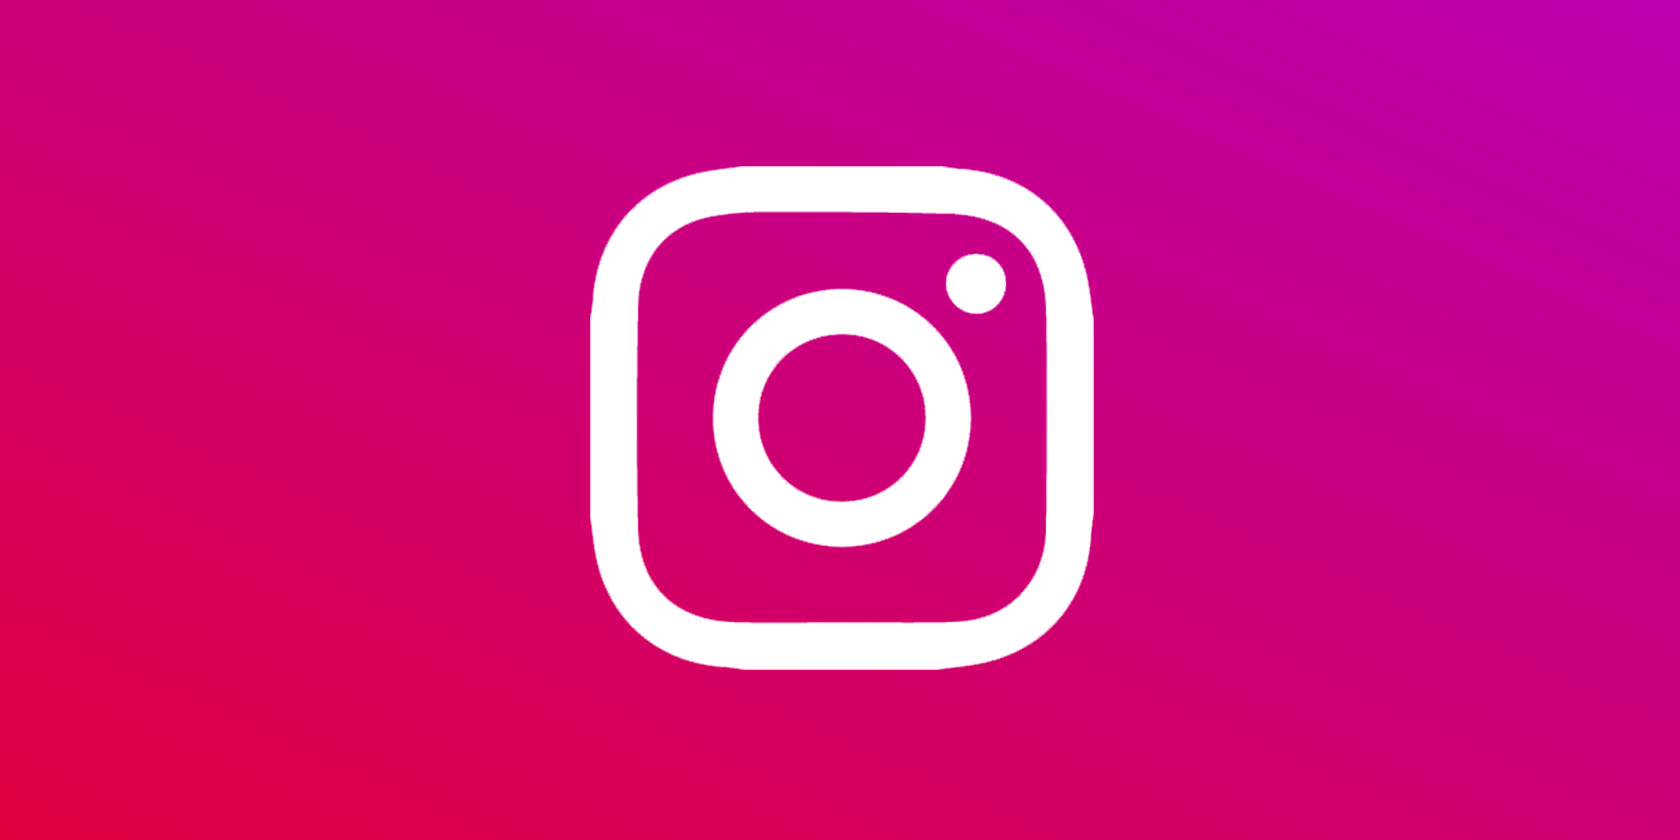 Instagram Apologizes for Bug That Removed User Stories